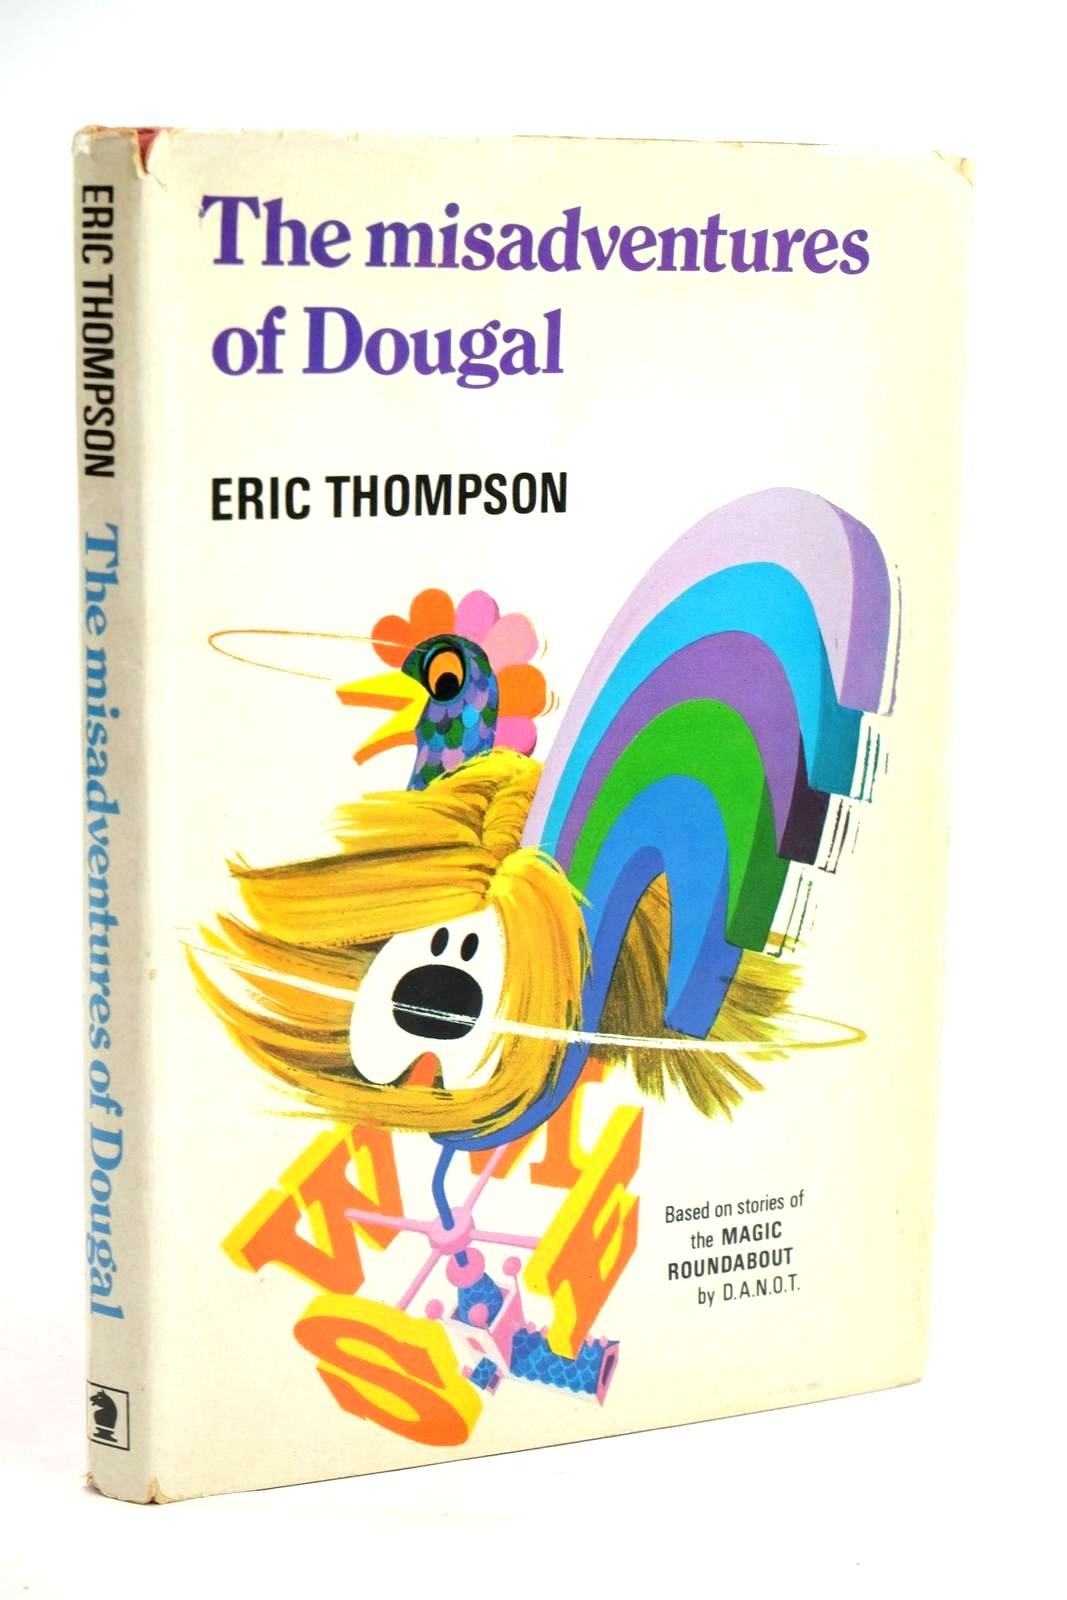 Photo of THE MISADVENTURES OF DOUGAL written by Thompson, Eric illustrated by Barnett, David published by Brockhampton Press (STOCK CODE: 1319749)  for sale by Stella & Rose's Books